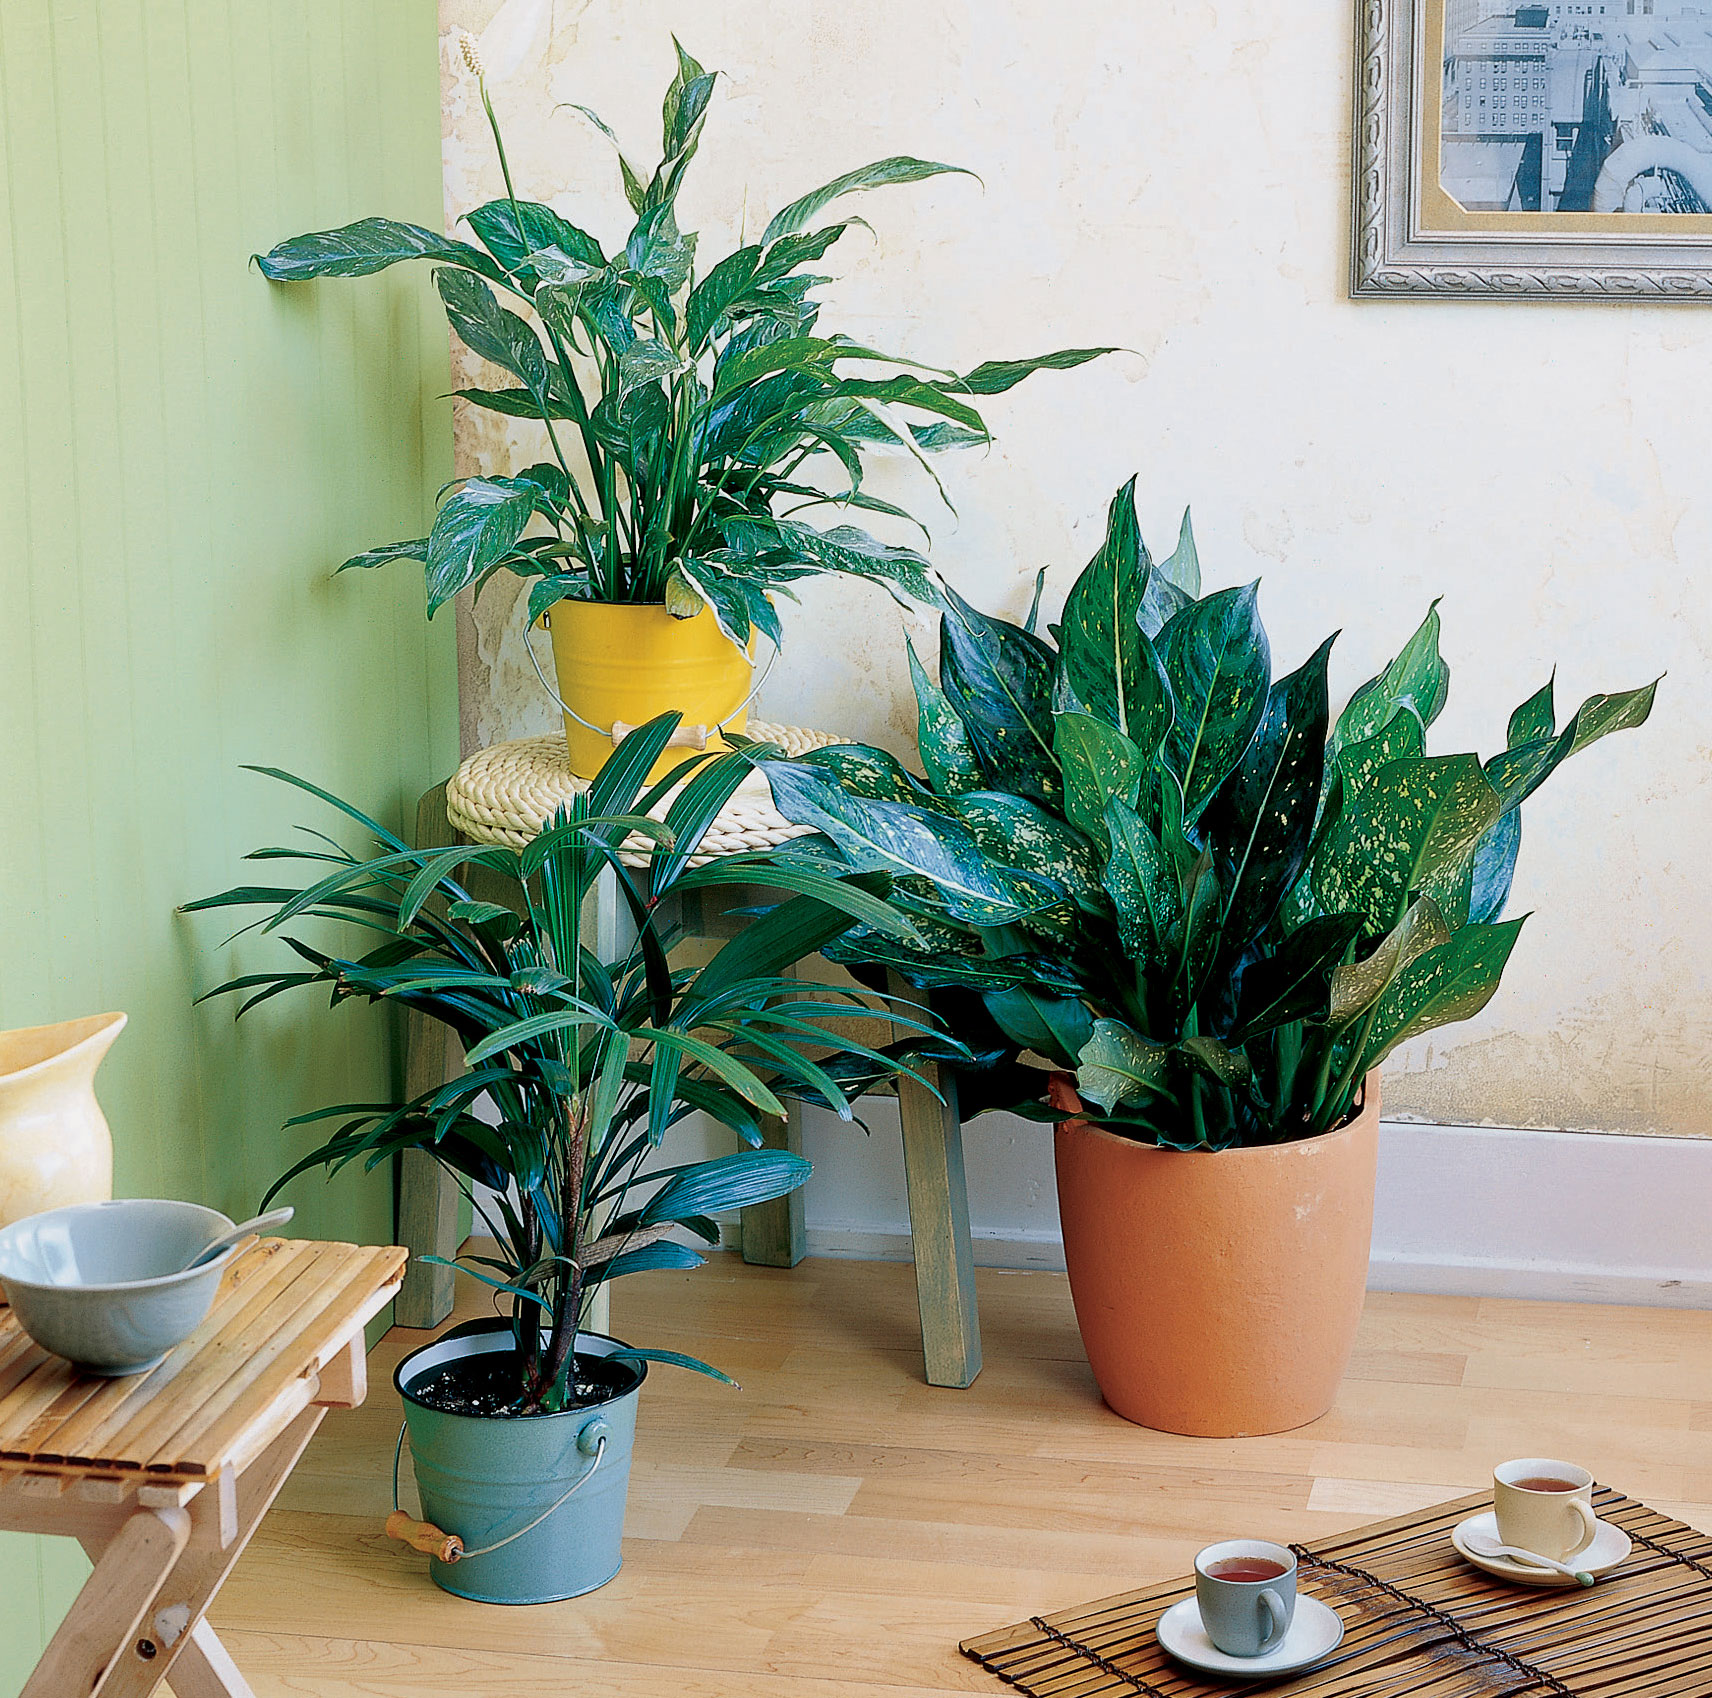 Easy-Care Indoor Plants